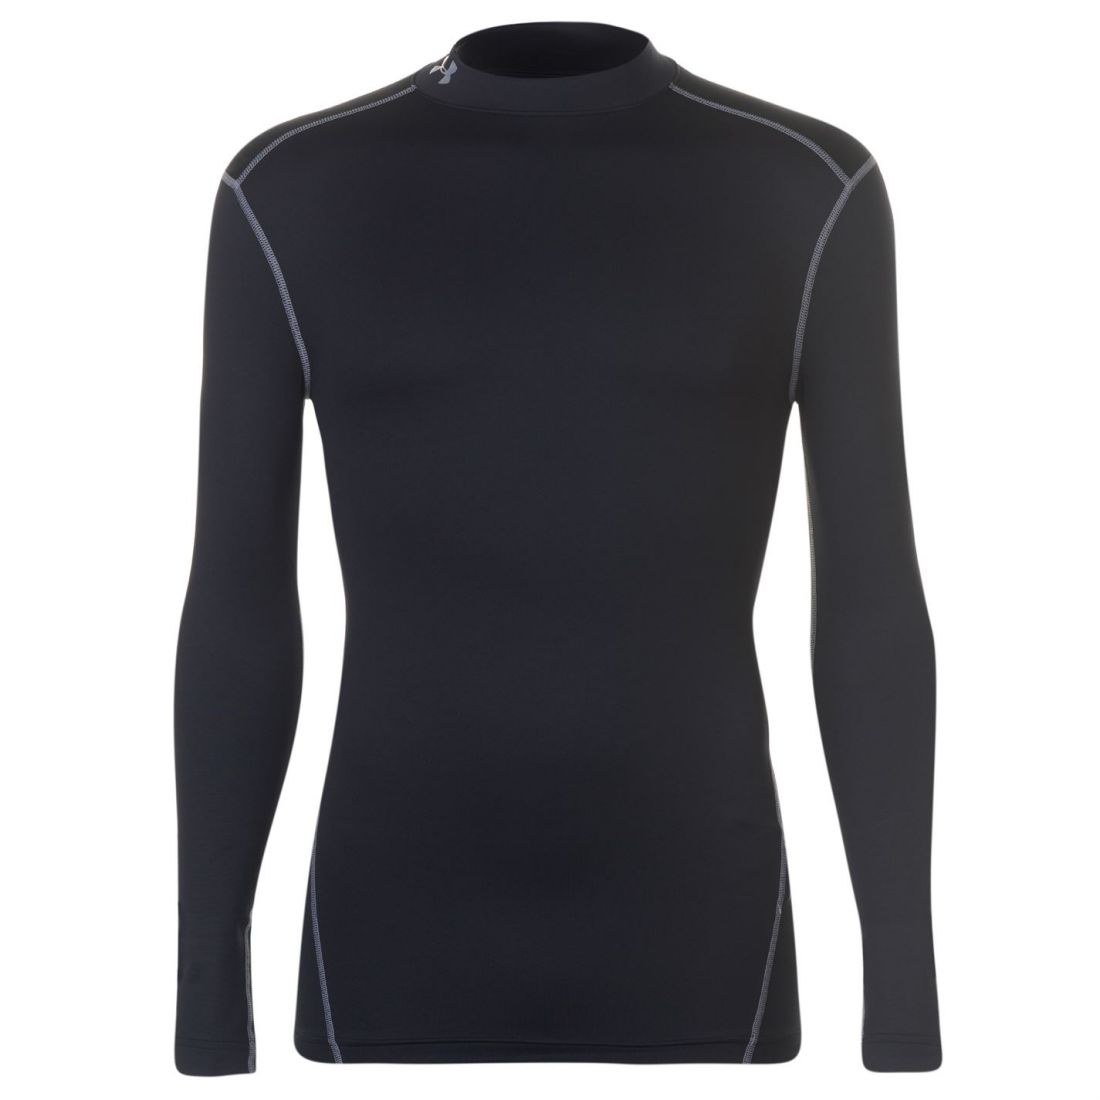 7befc528bb Details about Under Armour Mens ColdGear Mock Baselayer Top Compression  Armor Thermal Skins